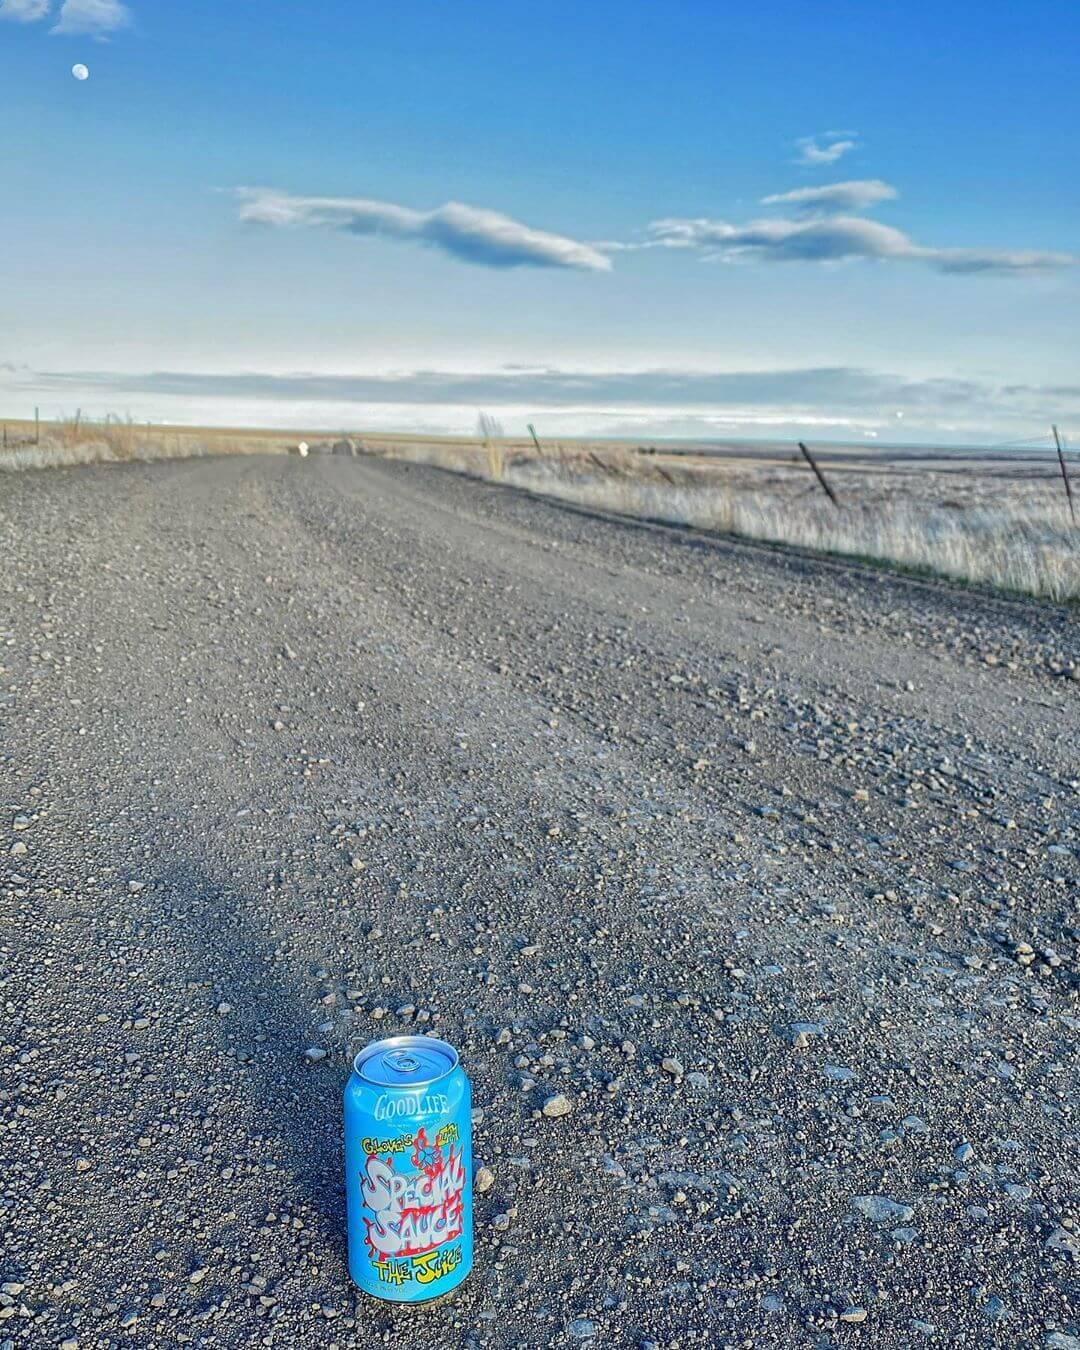 Country roads, take me home! #goodlifebrewing #thejuiceipa